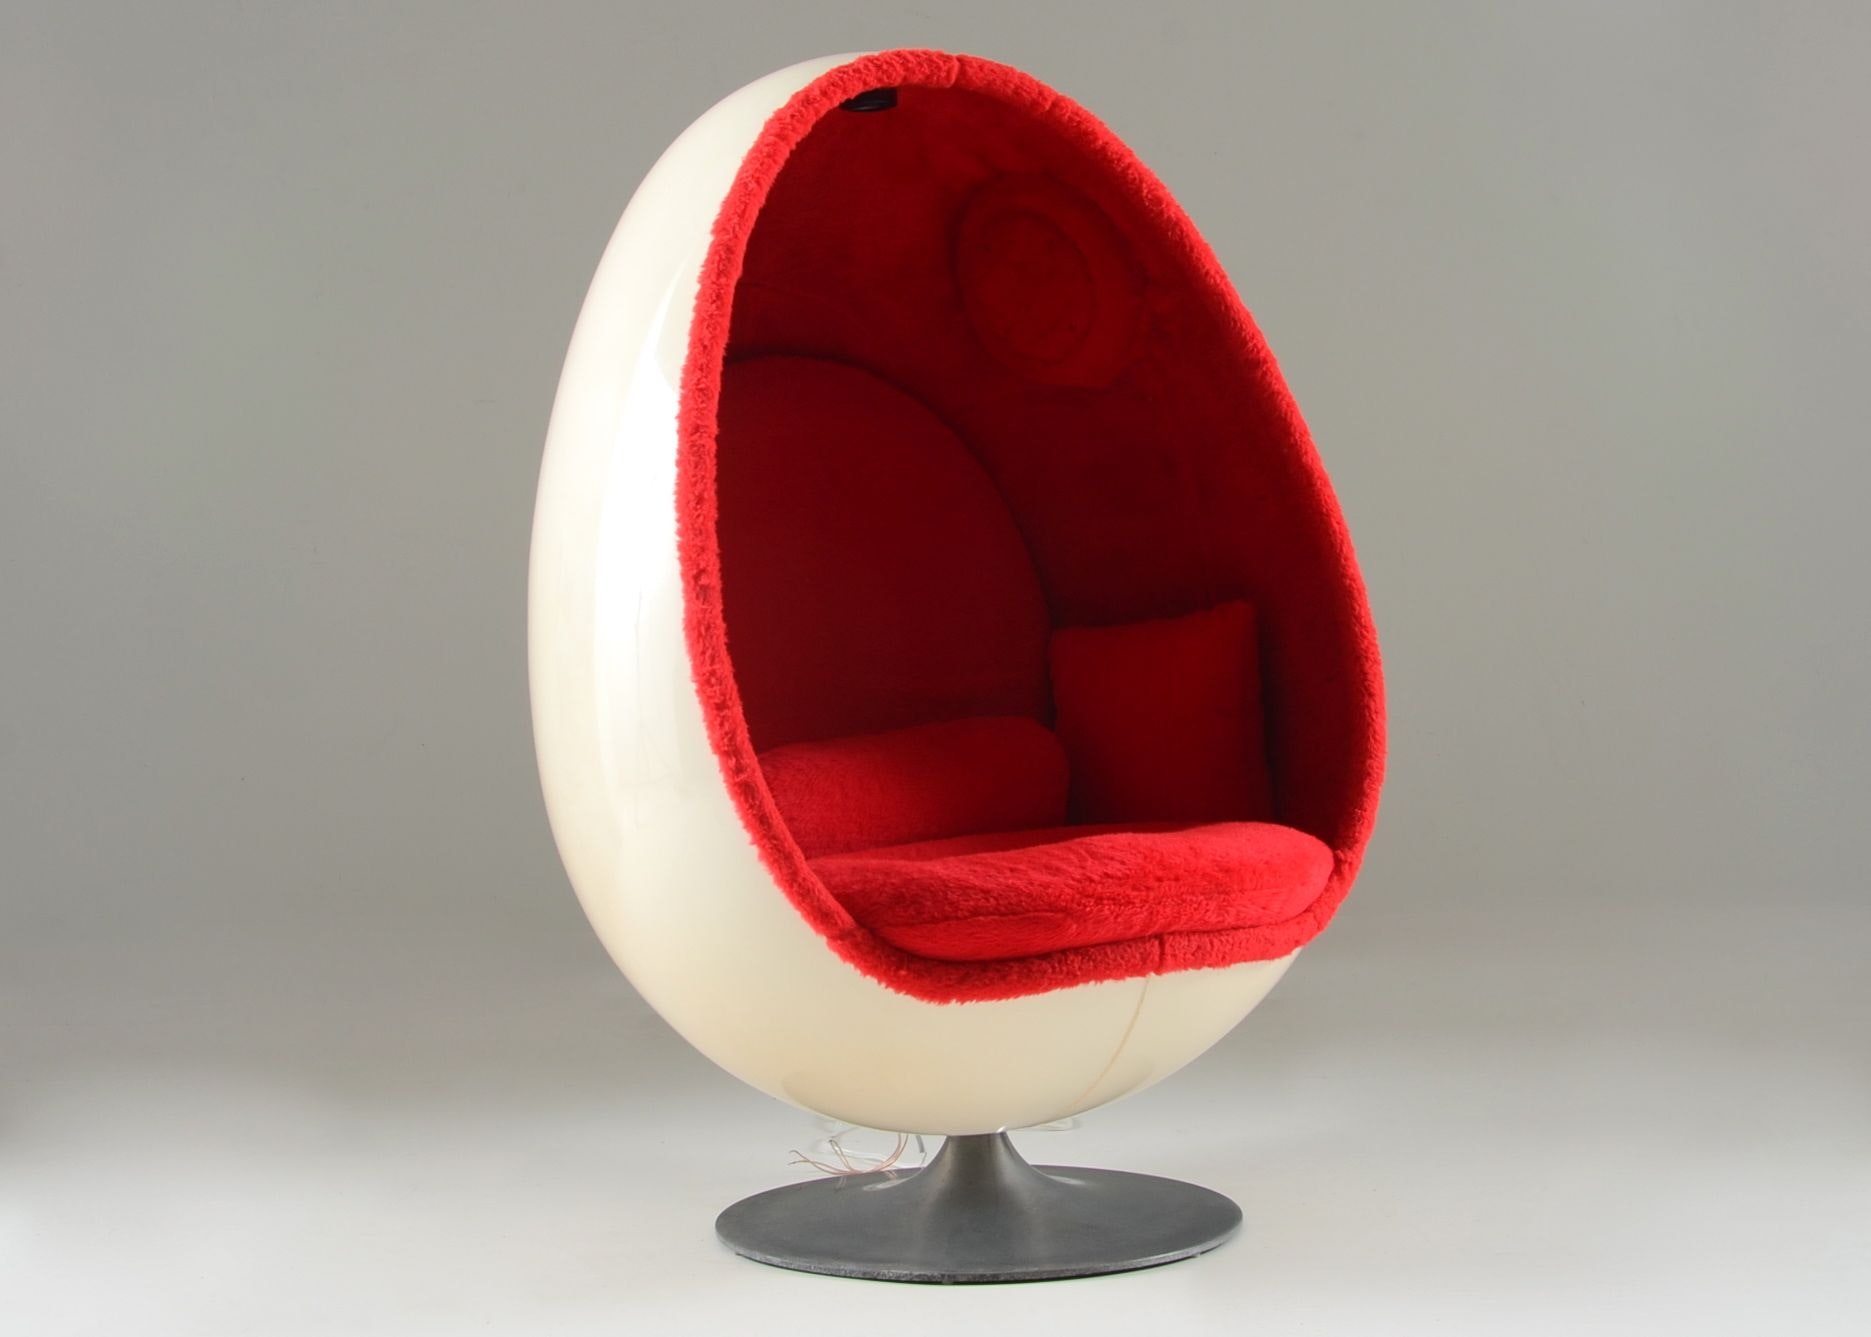 1960s Egg Chair